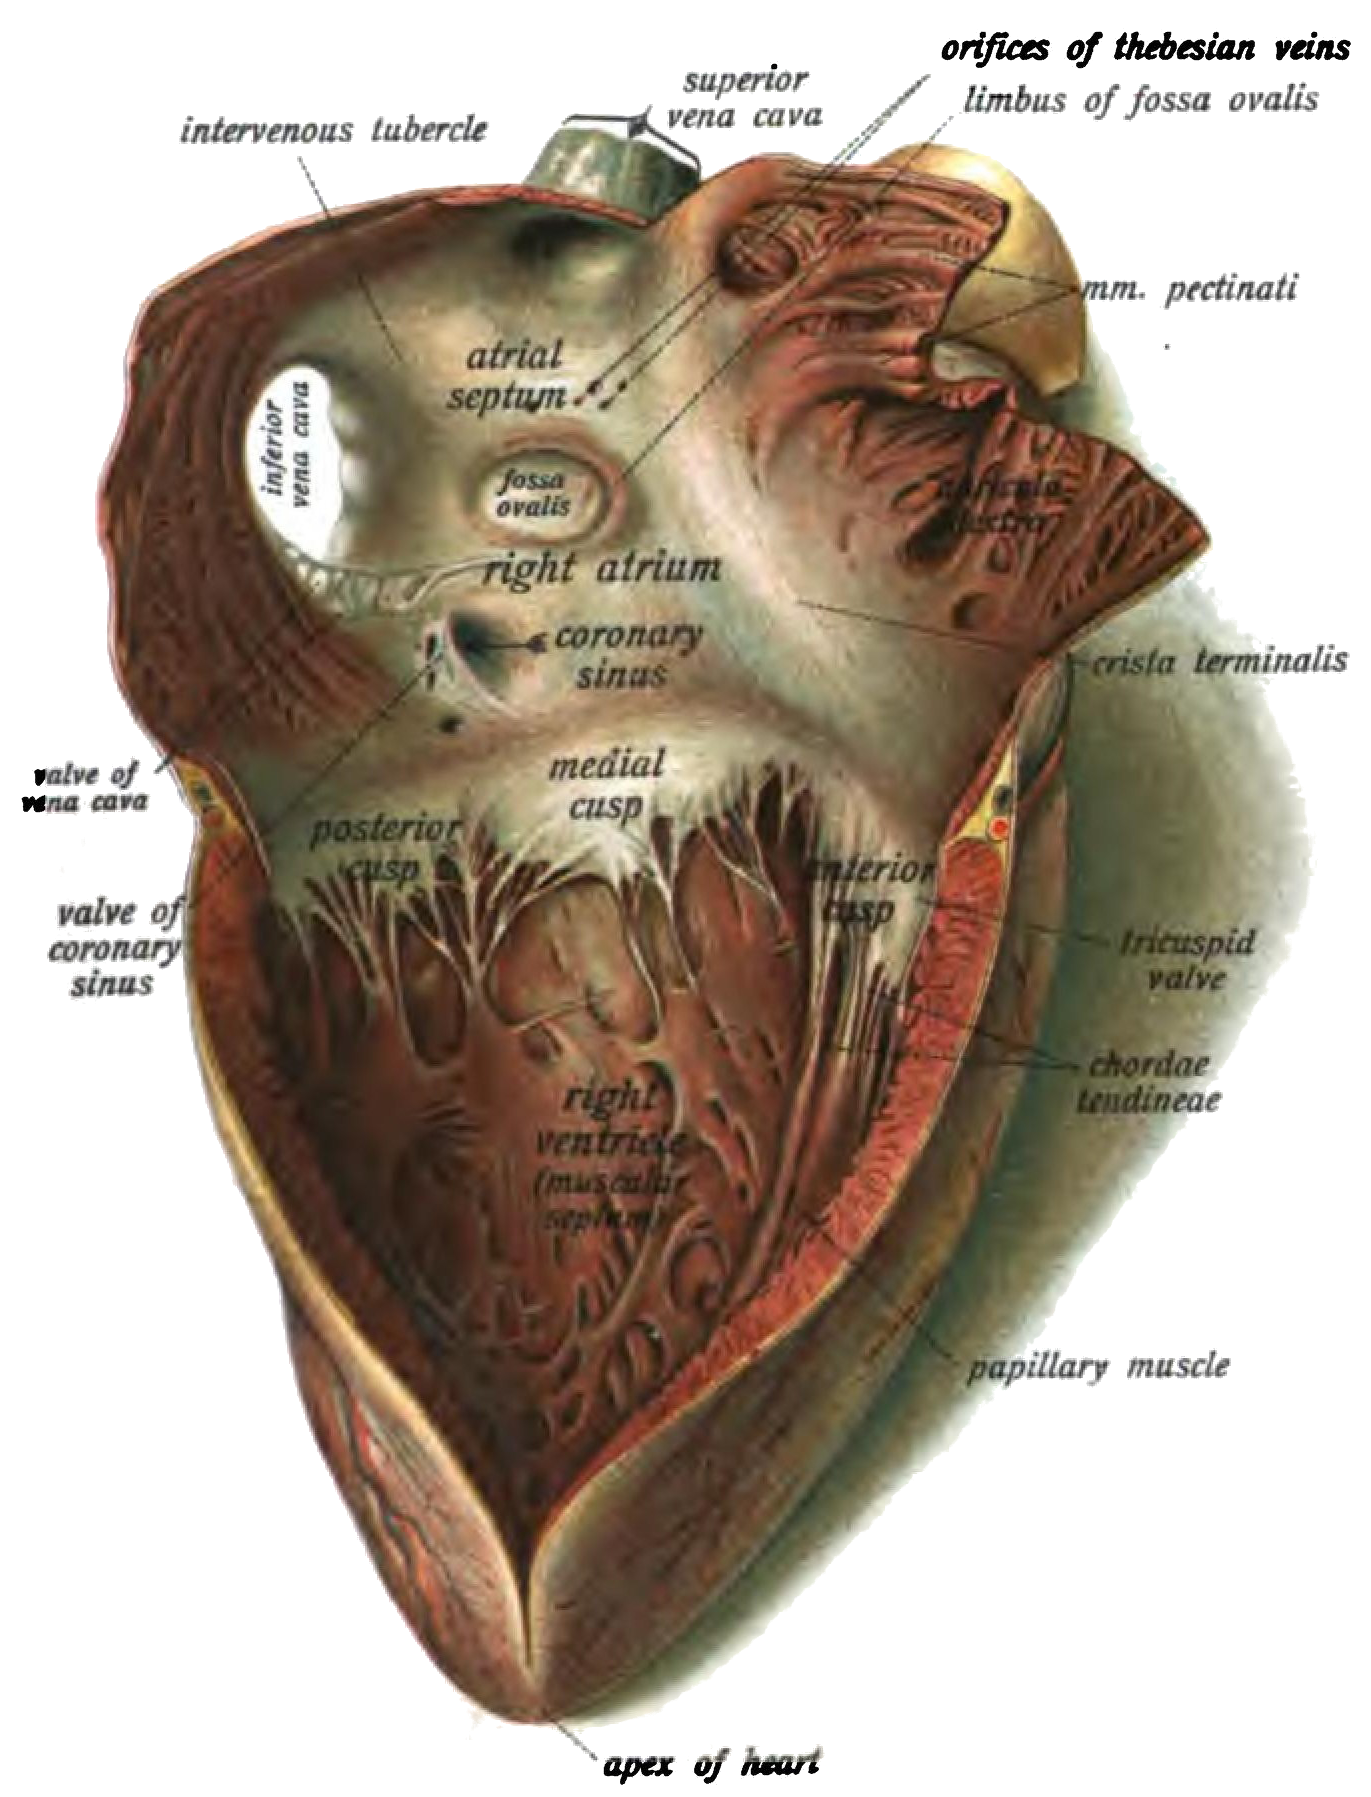 The anatomy and location of the fossa ovalis in reference to other structures of the heart.